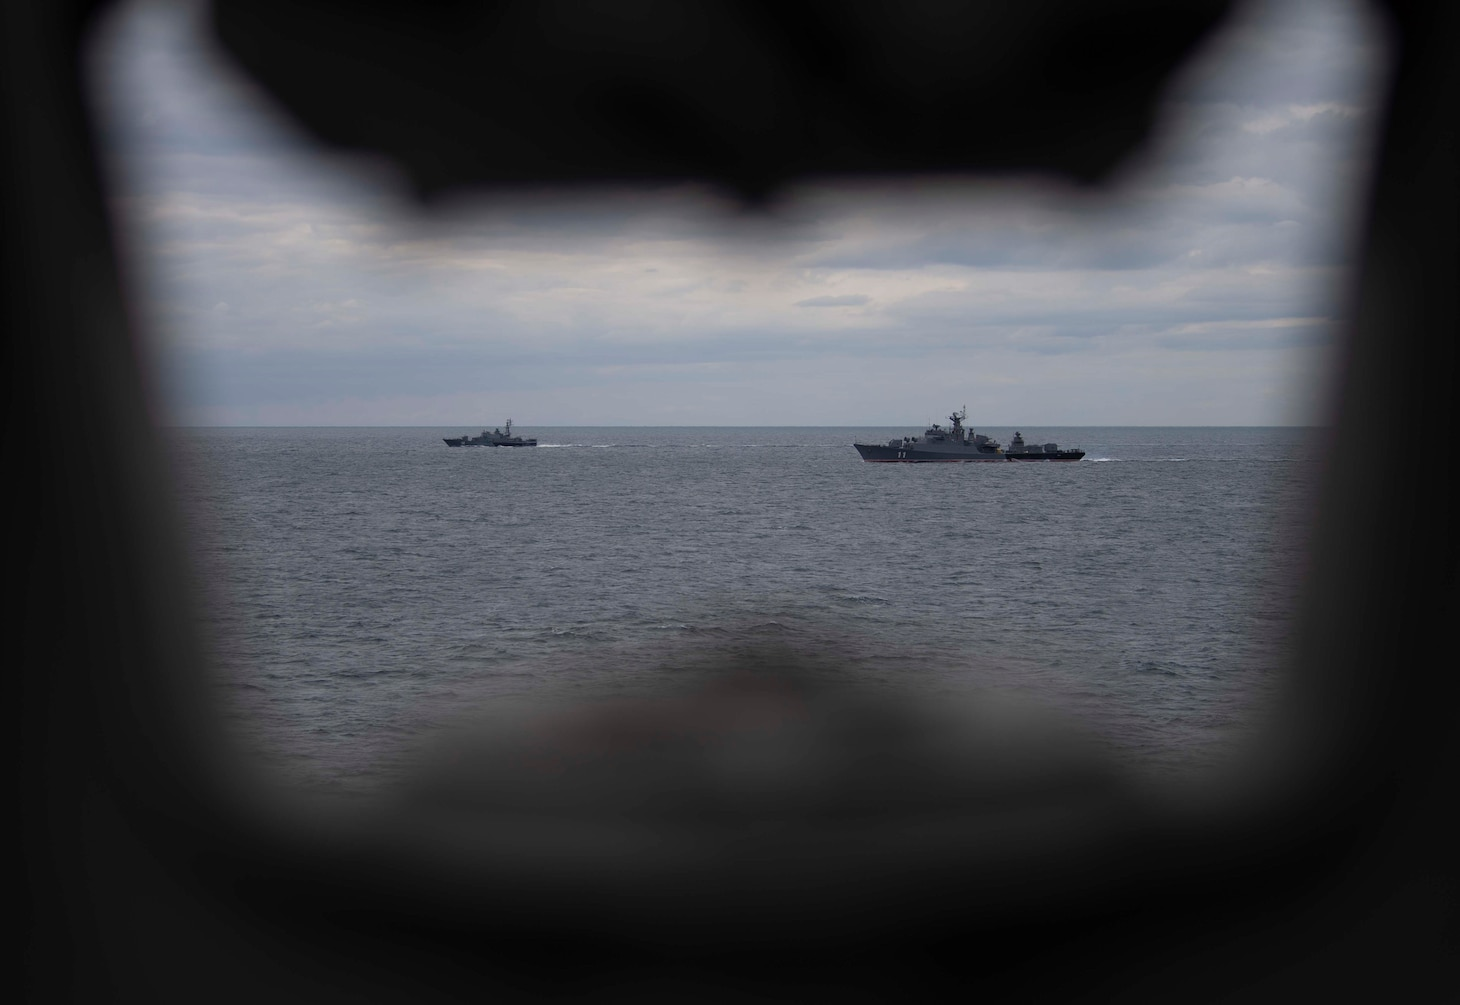 BLACK SEA (Sept. 20, 2020) Bulgarian Navy Koni-class frigates BGS Smeli (F-11) and BGS Bodri (F-13) participate in a passing exercise with the Arleigh Burke-class guided-missile destroyer USS Roosevelt (DDG 80), Sept. 20, 2020. Roosevelt, forward-deployed to Rota, Spain, is on its first patrol in the U.S. Sixth Fleet area of operations in support of regional allies and partners and U.S. national security interests in Europe and Africa.